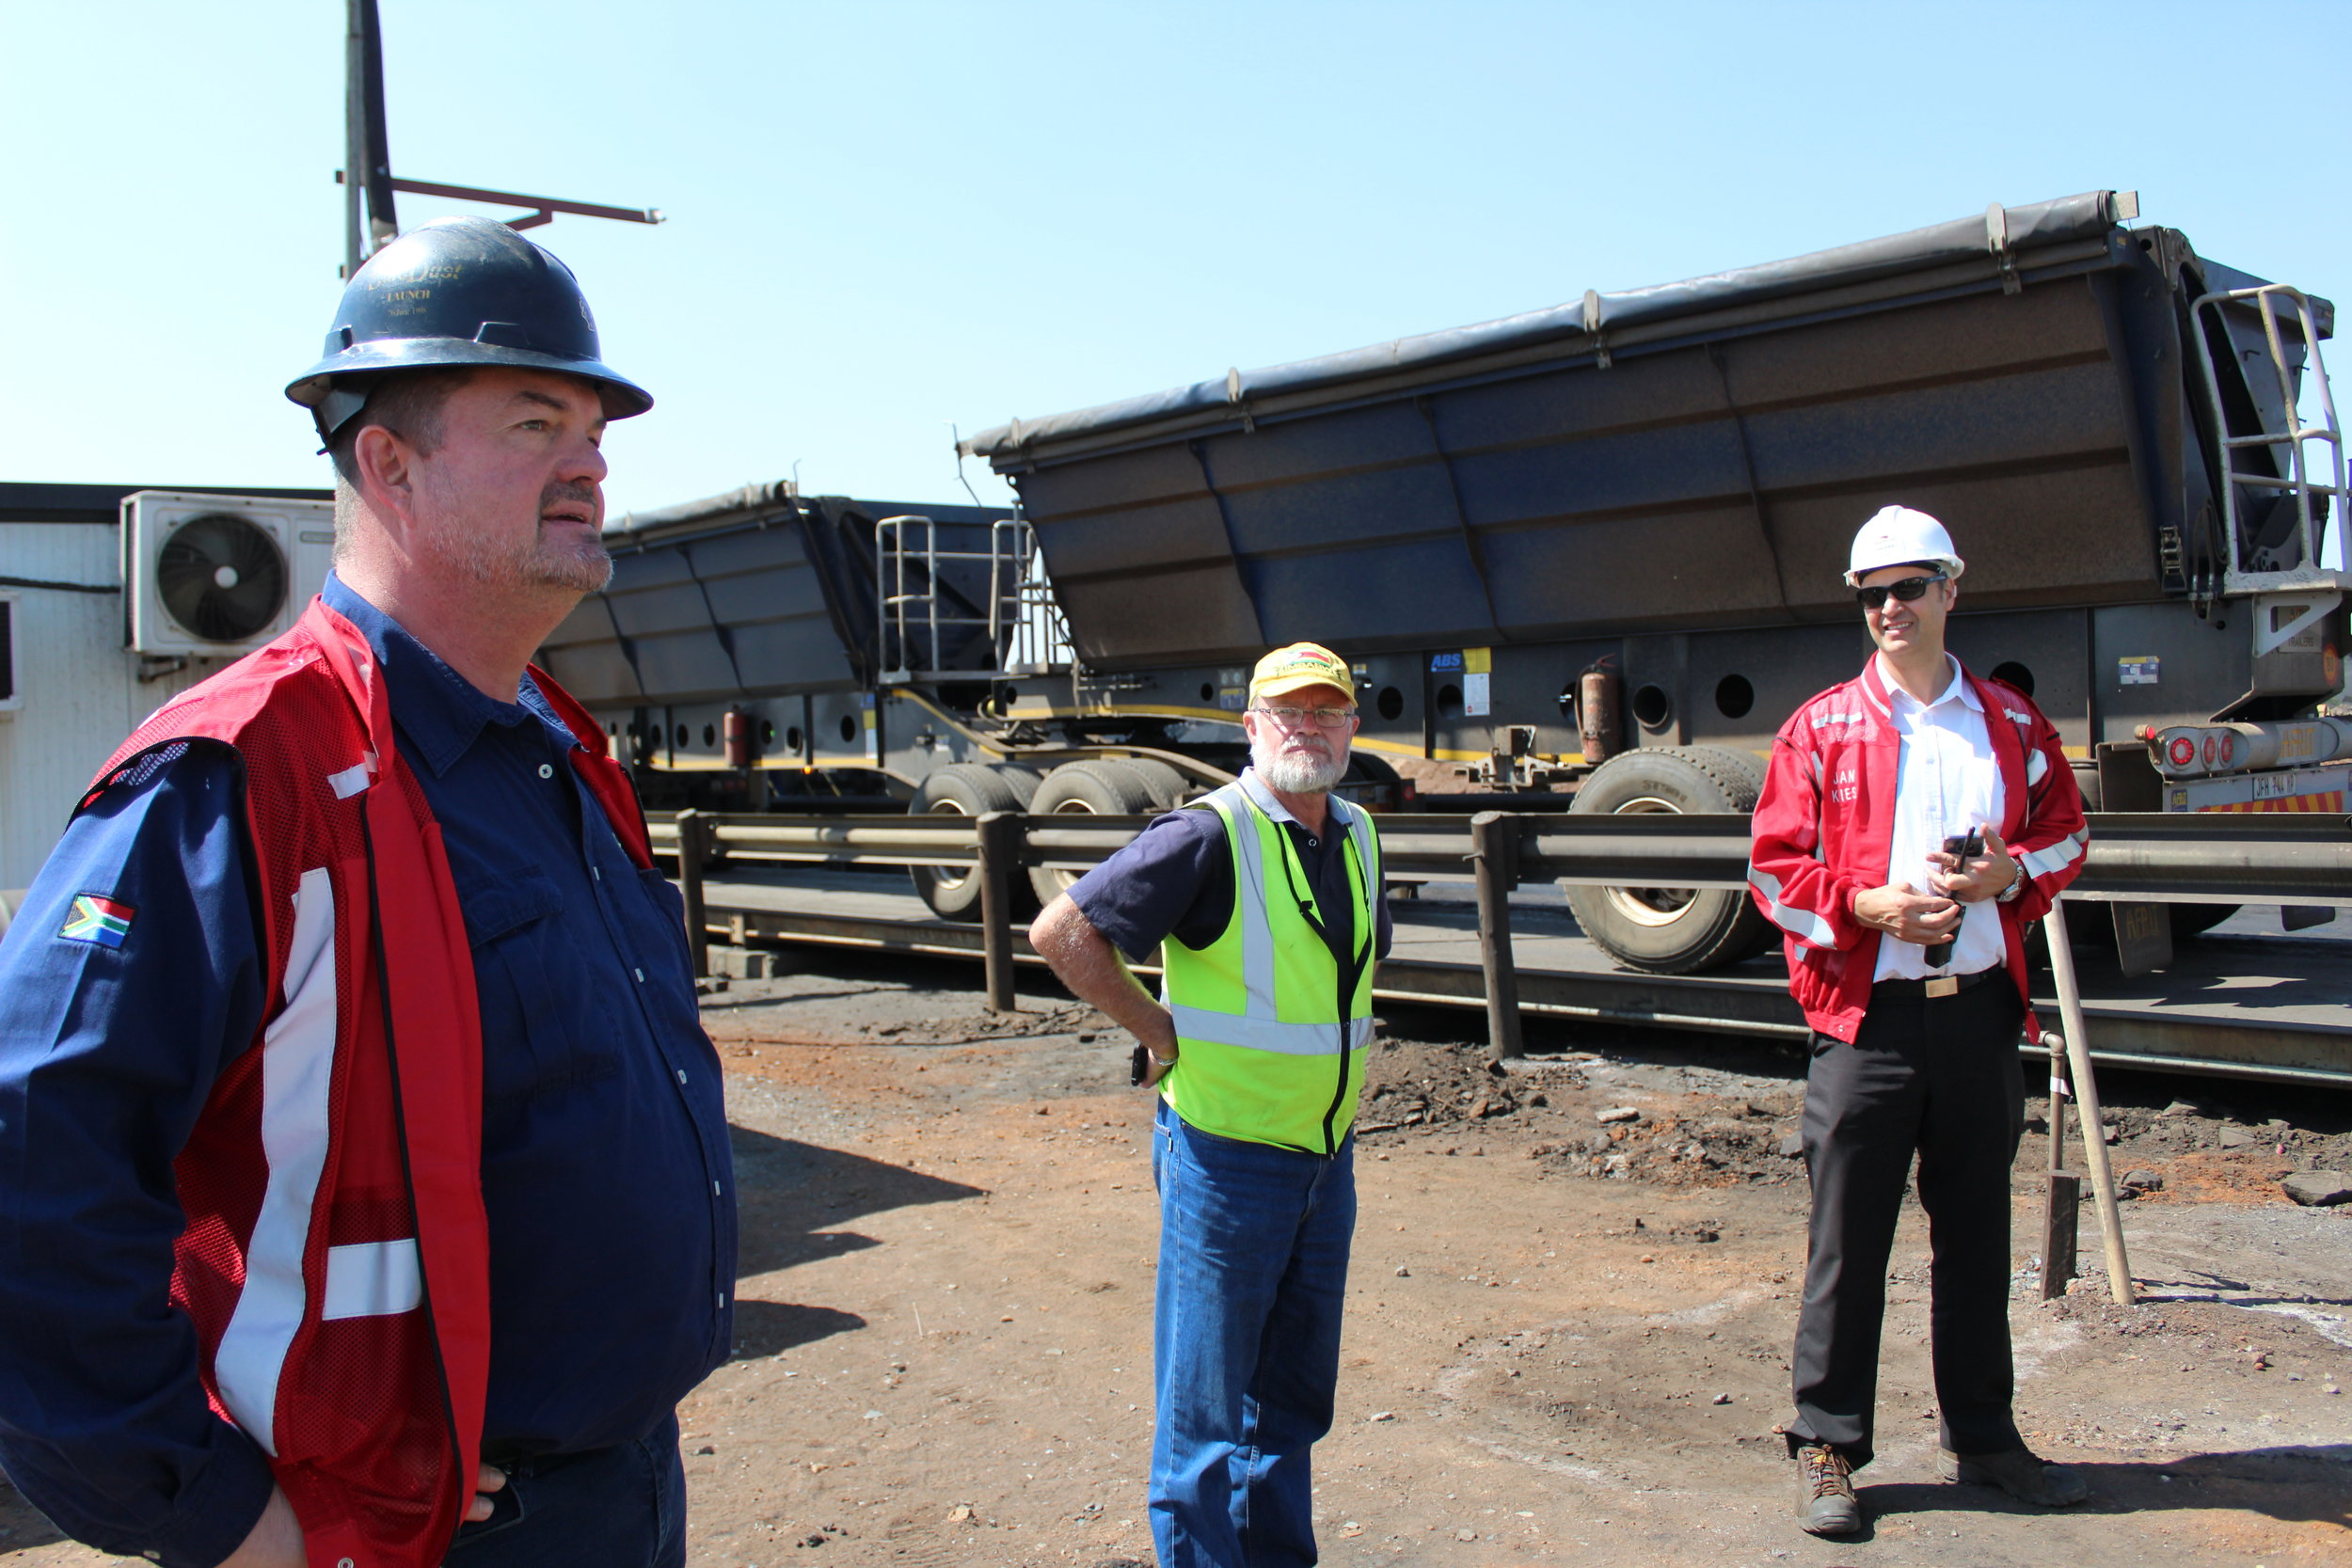 GM Alan Mabbett, Weighbridge Manager Naas Neveling, and Security Manager Jan Kies started the tour with a brief explanation of safety and security protocols as coal is transported out the mine by trucks at the weighbridge.